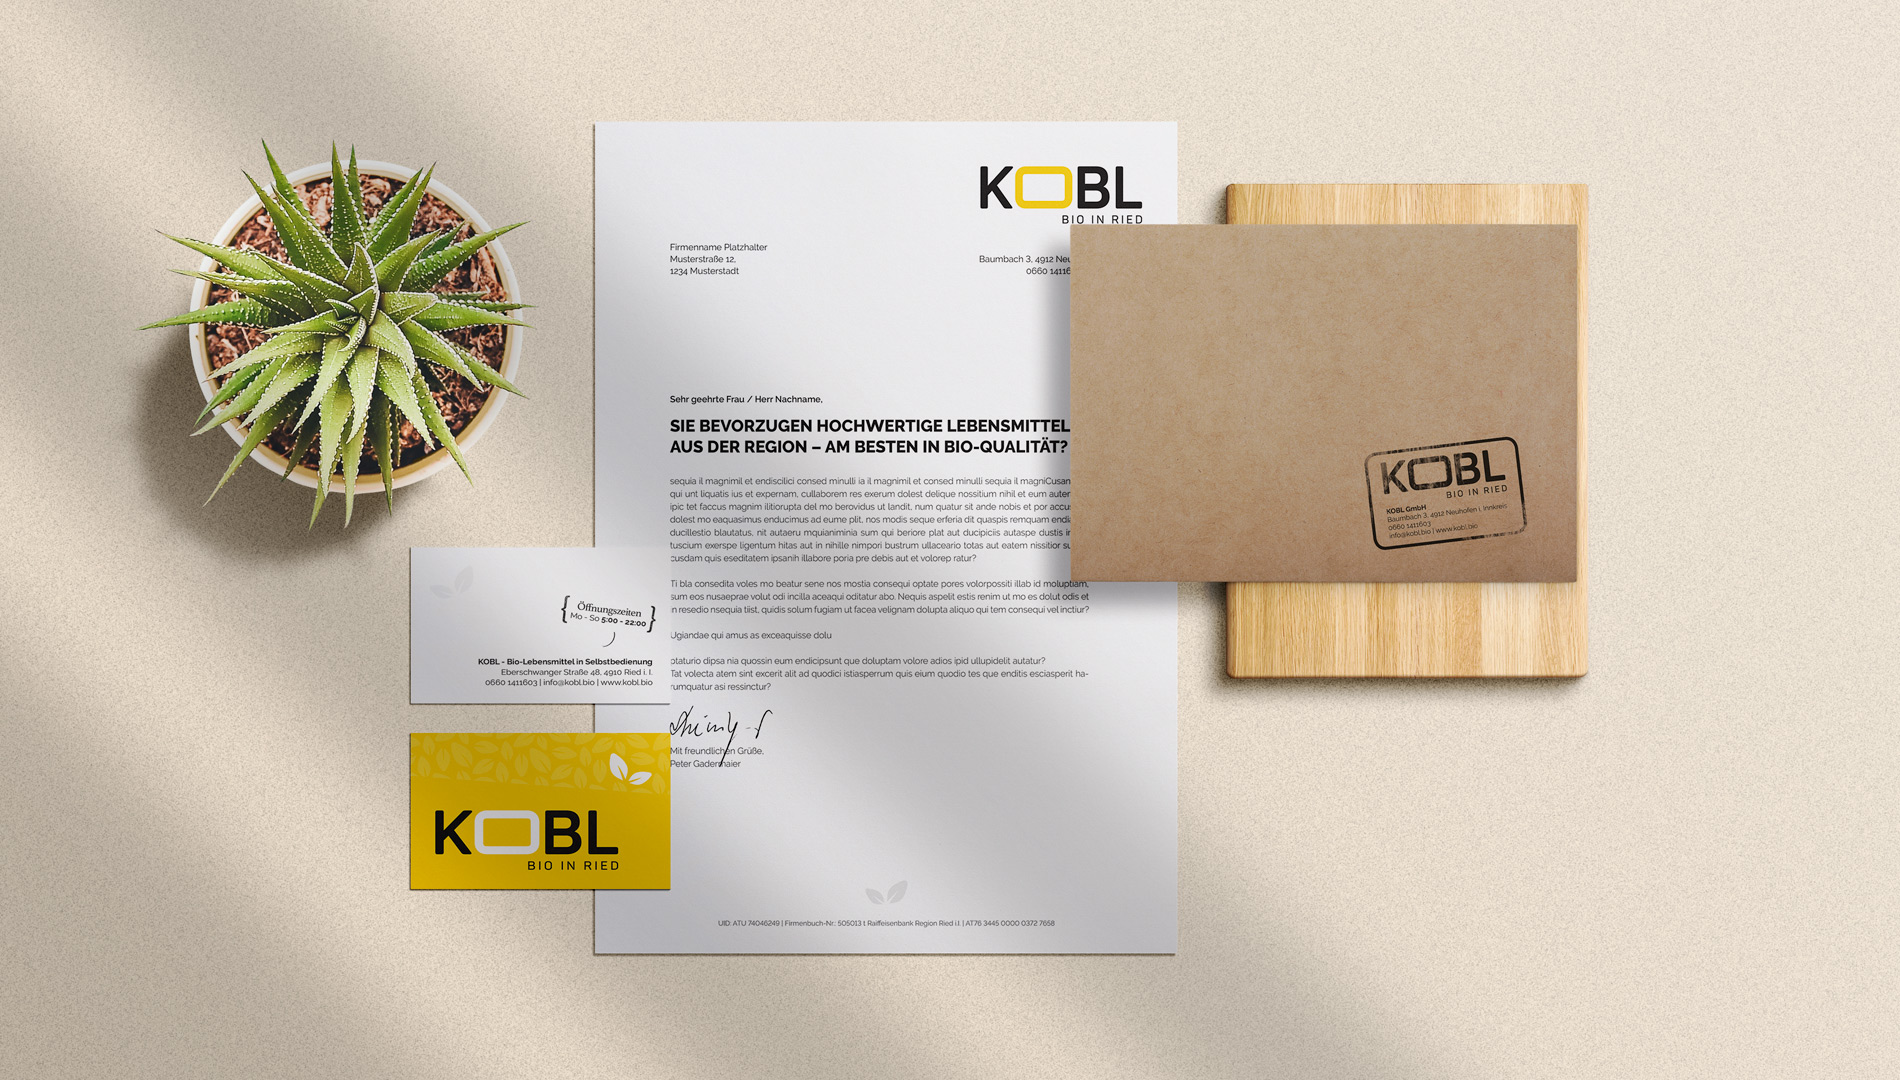 djw-kobl-bild-stationary